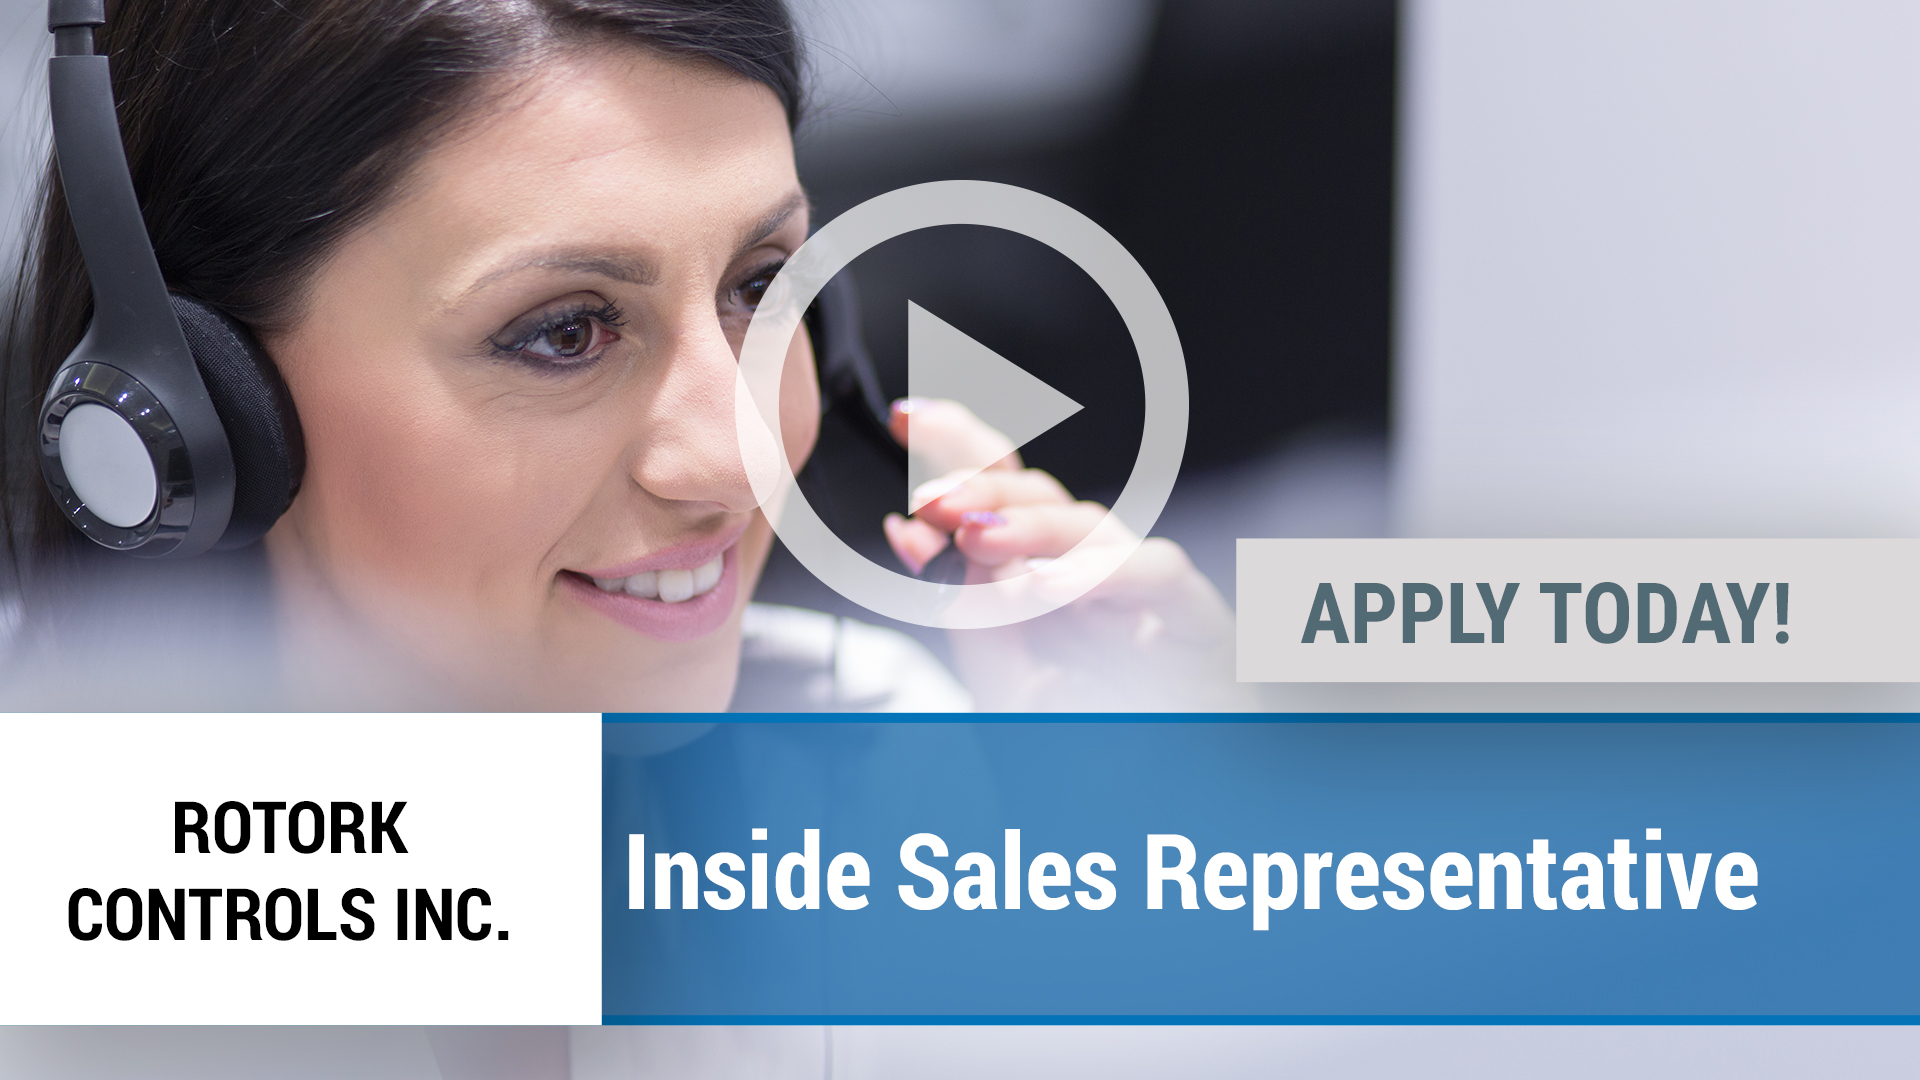 Watch our careers video for available job opening Inside Sales Representative in Dallas, TX